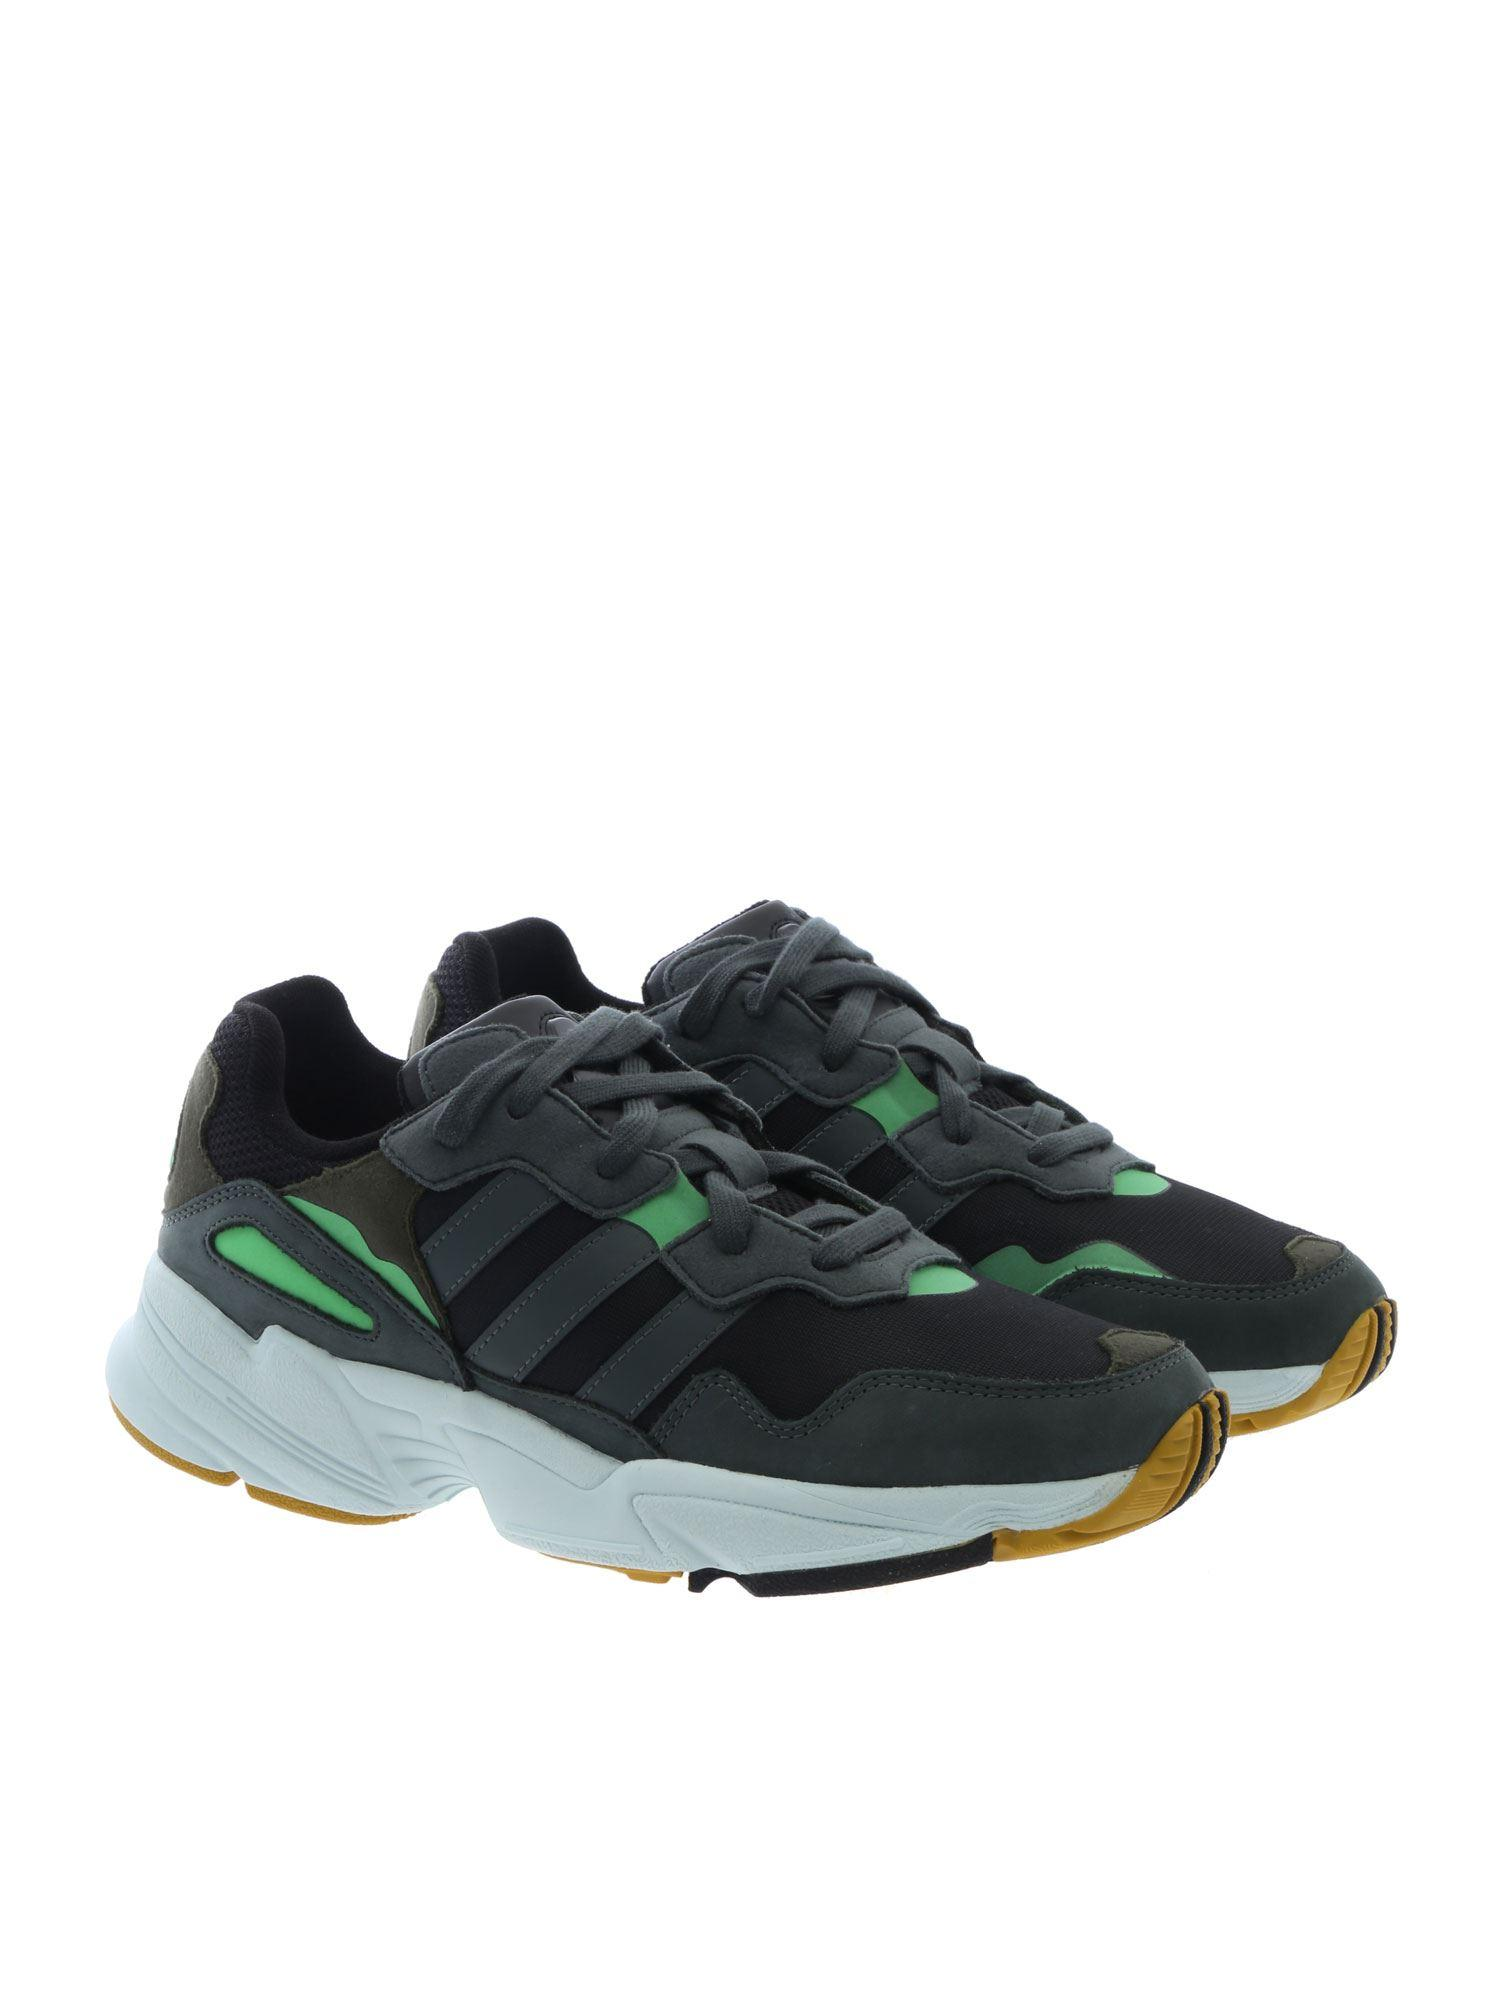 detailed look 4dbfe 6e001 Lyst - adidas Originals Green And Black Yung-96 Sneakers in Green for Men